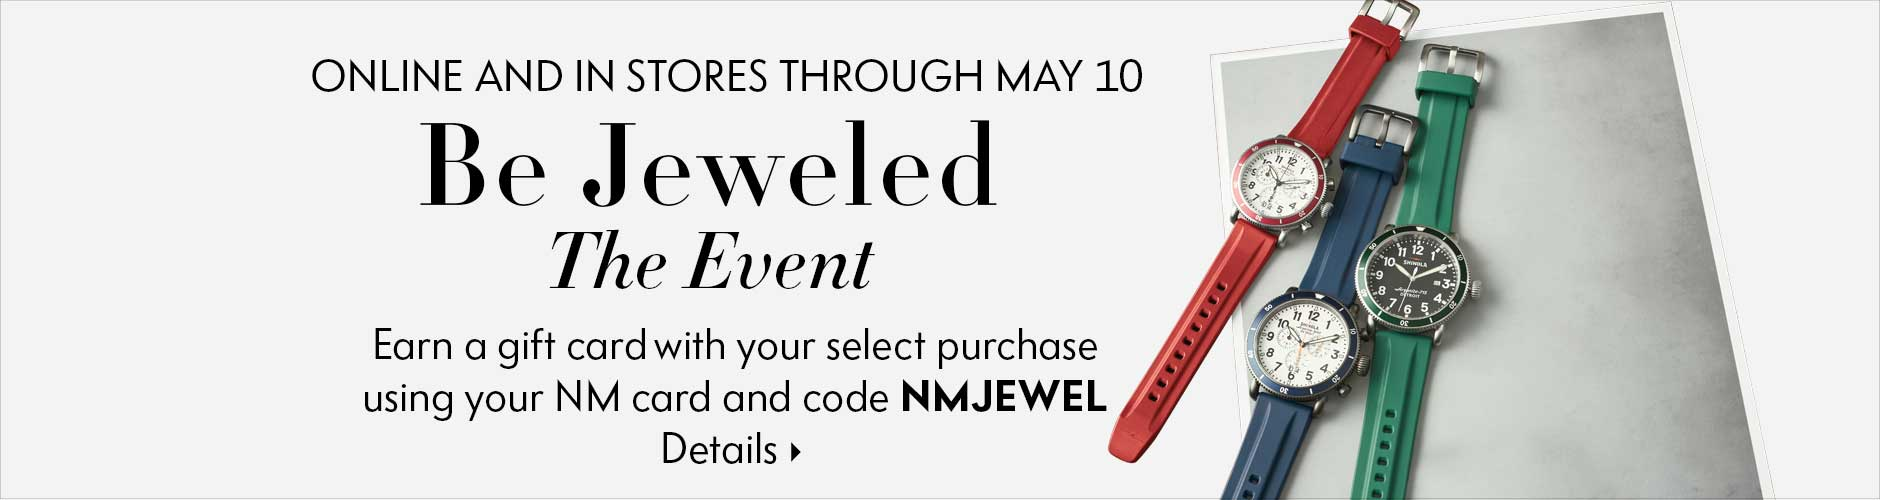 Be Jeweled Gift Card Event!